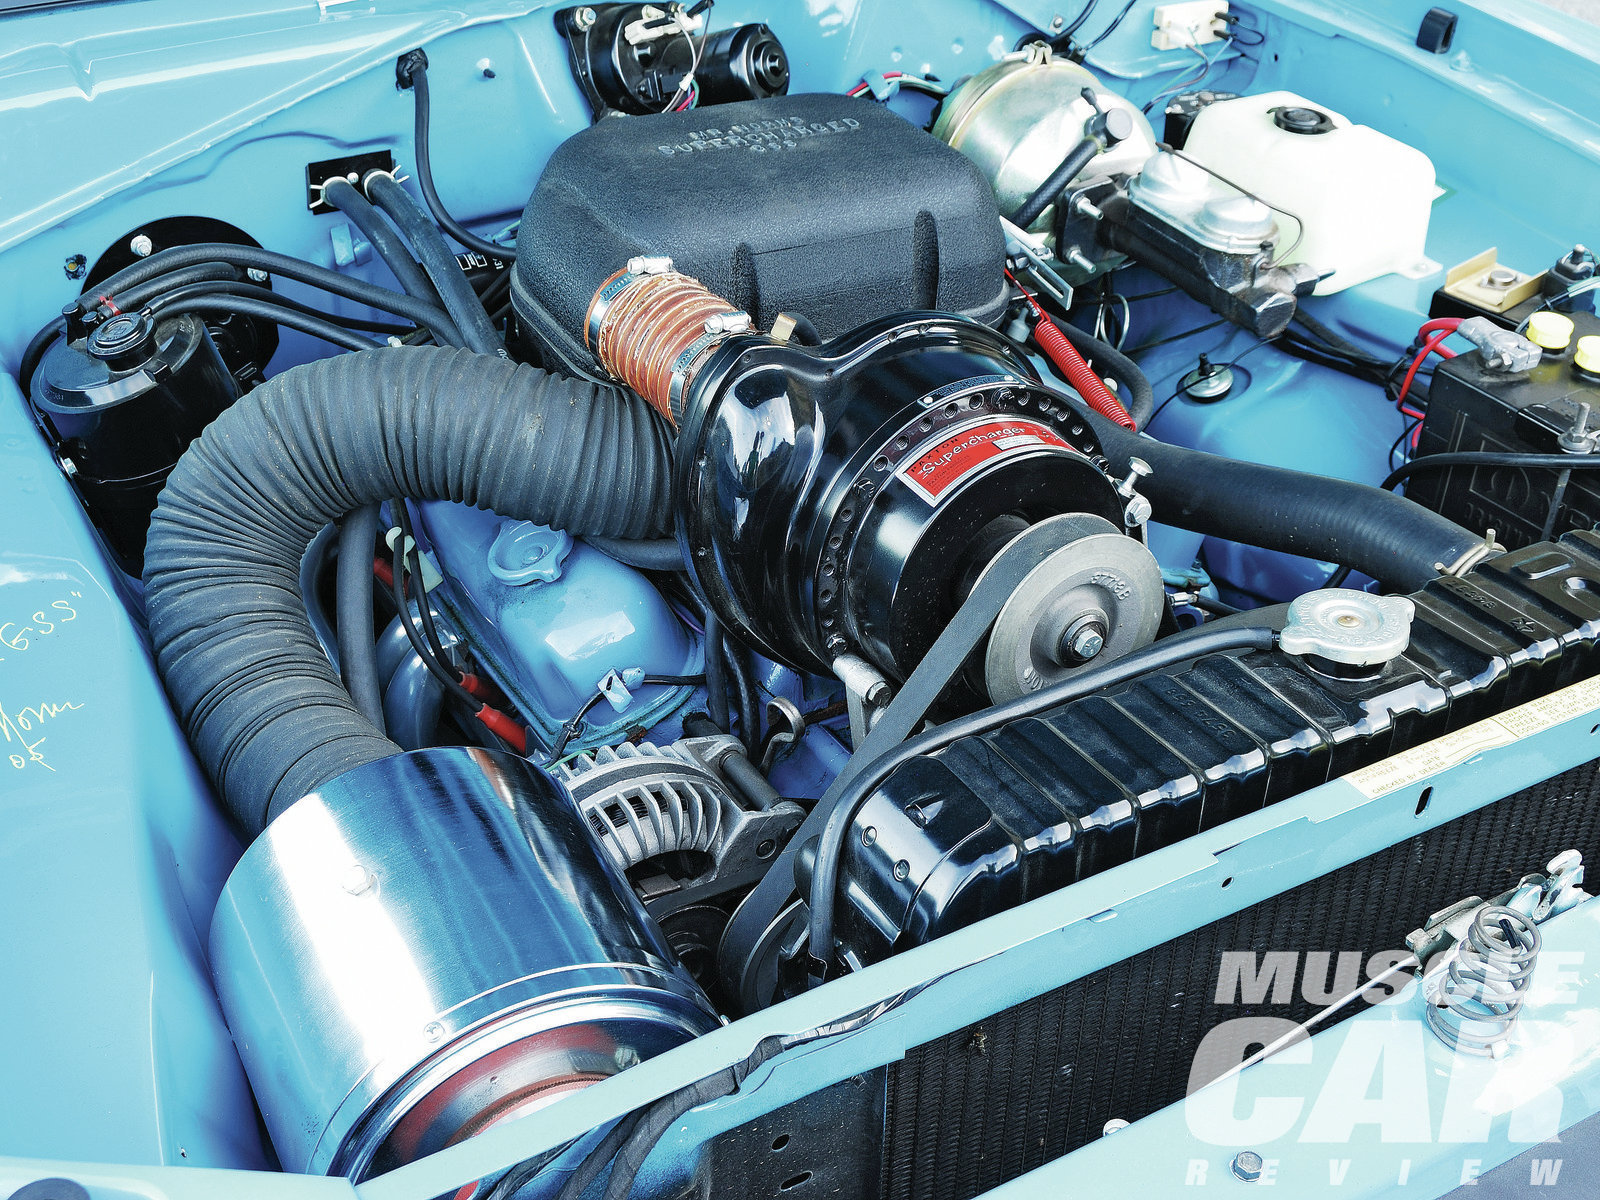 Lowered compression and a switch from gross to net ratings lowered the 340's power numbers from 275 in the '71 model to 240 in the '72. Mr. Norm's power-adder brought the ponies back up to 360 when the Paxton blower was in full boost.